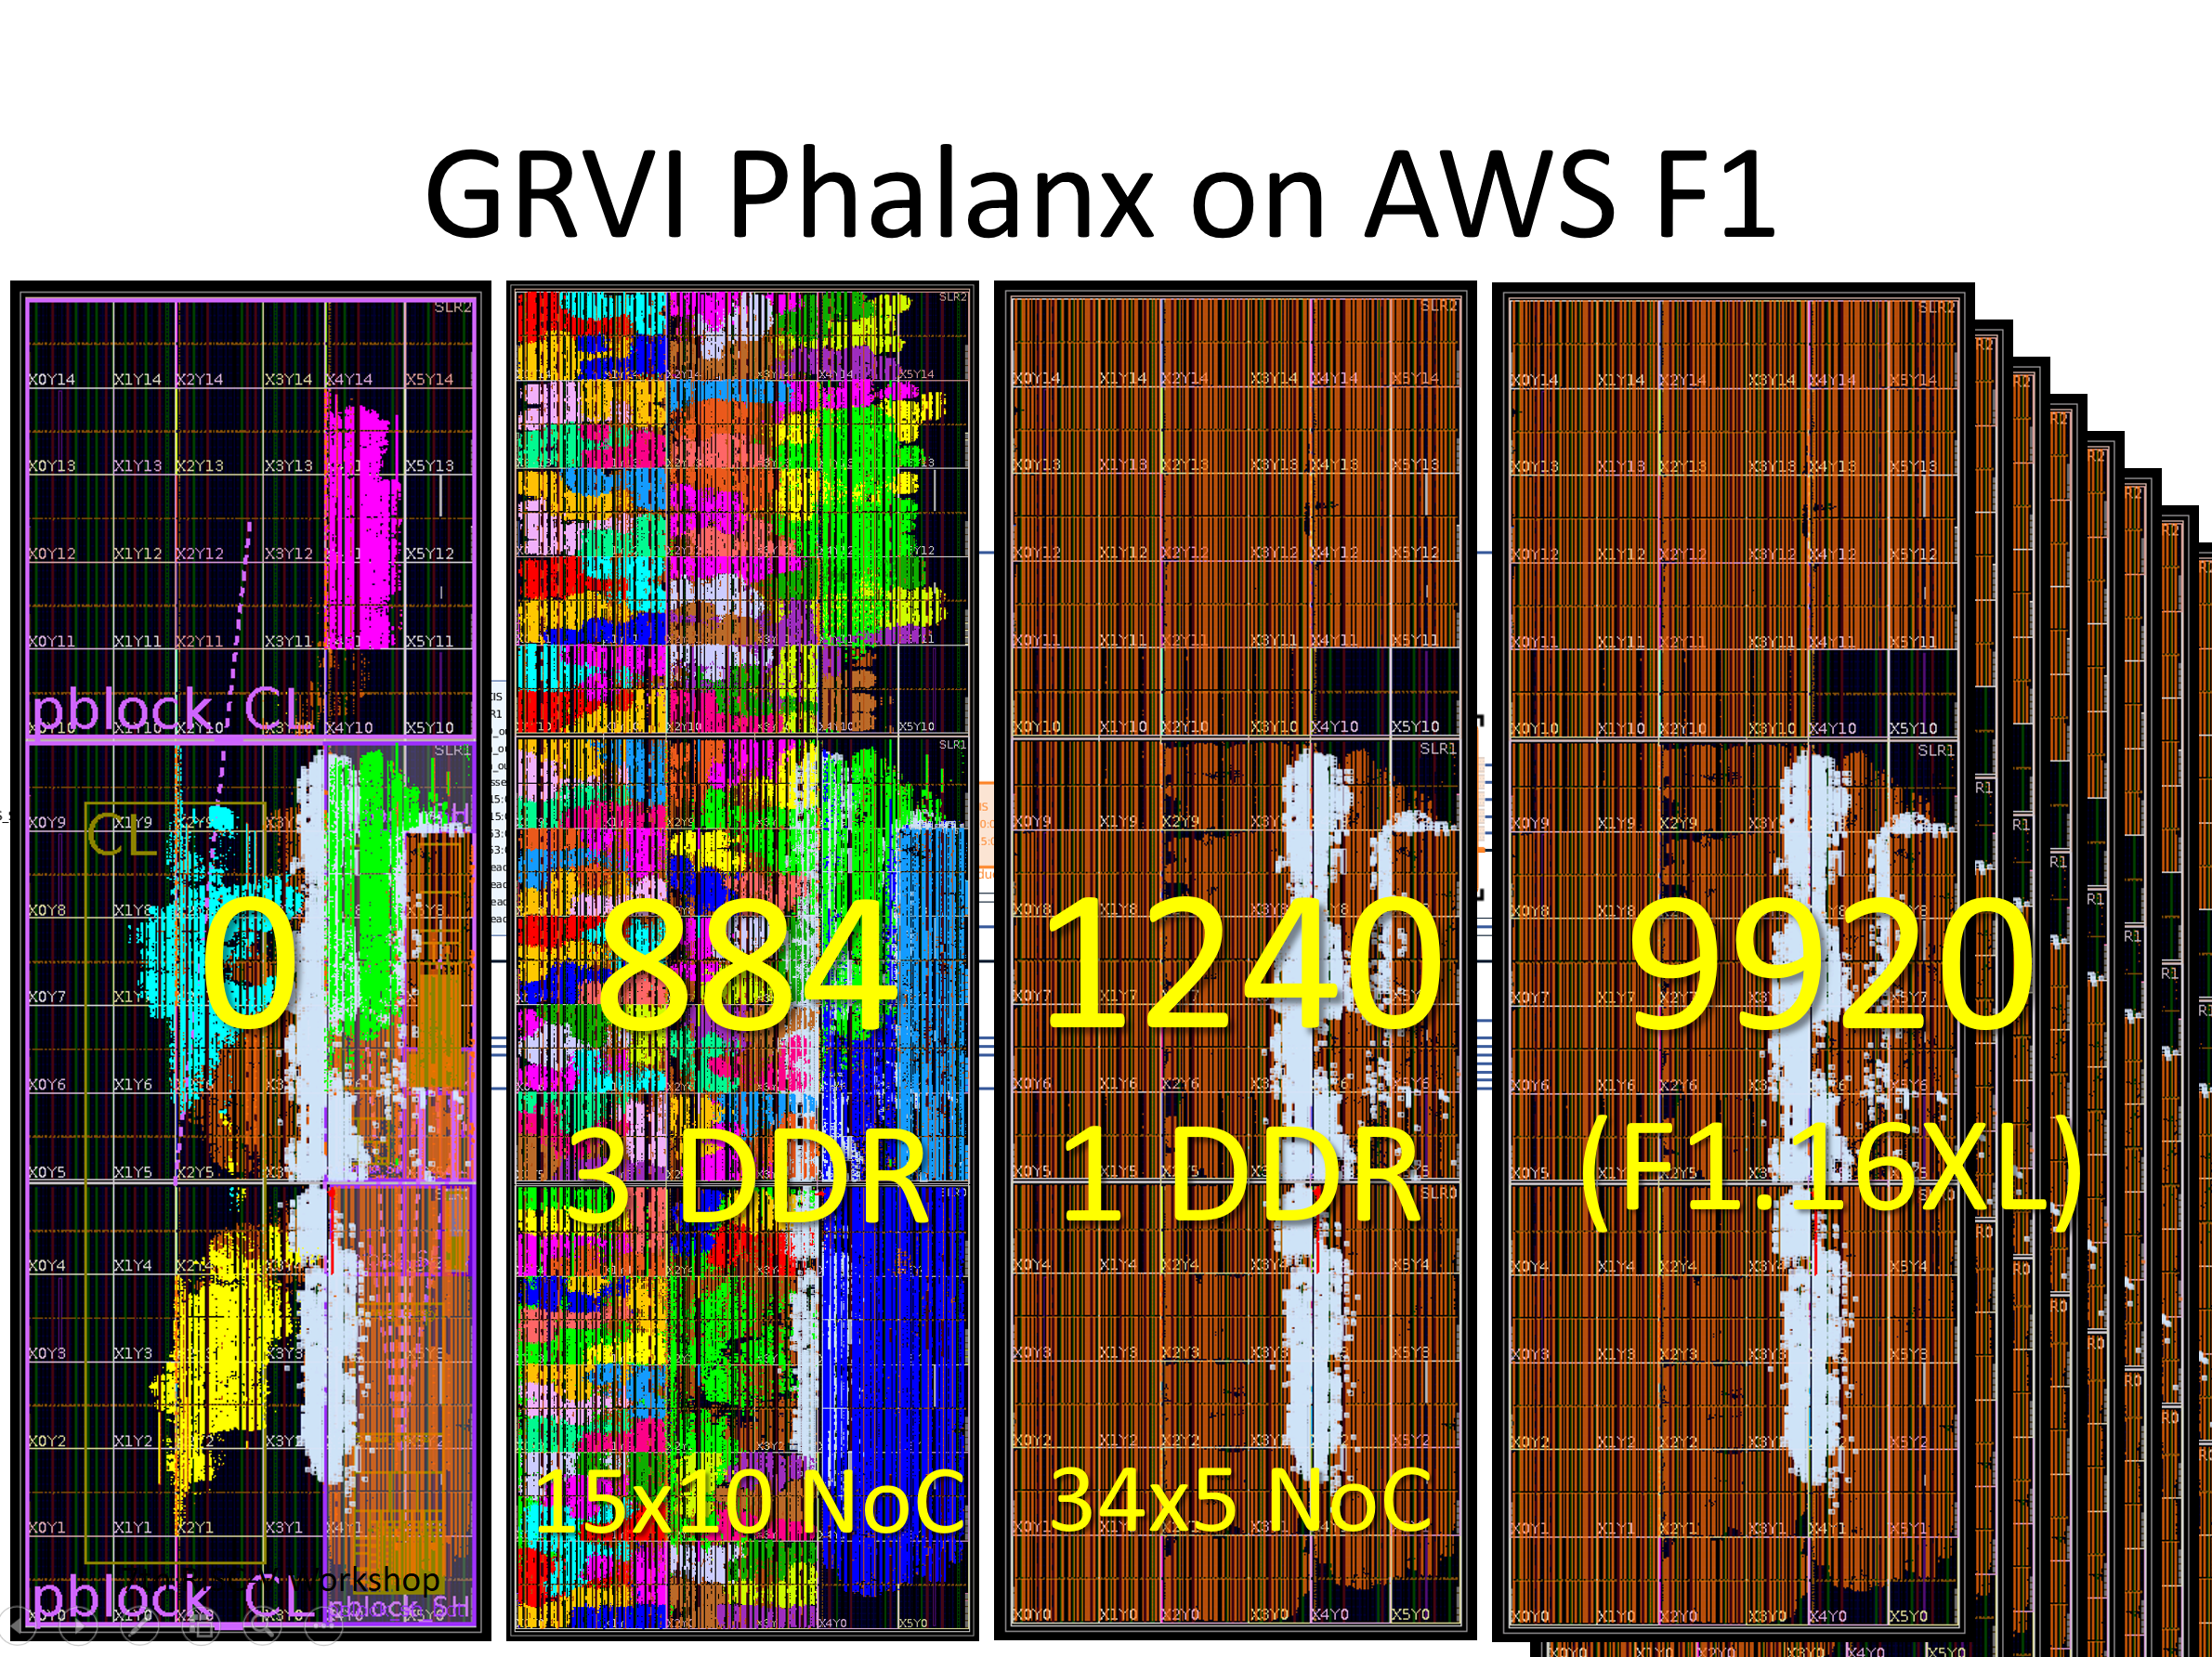 FPGA CPU News | Exploring Parallel Computer Architecture with FPGAs